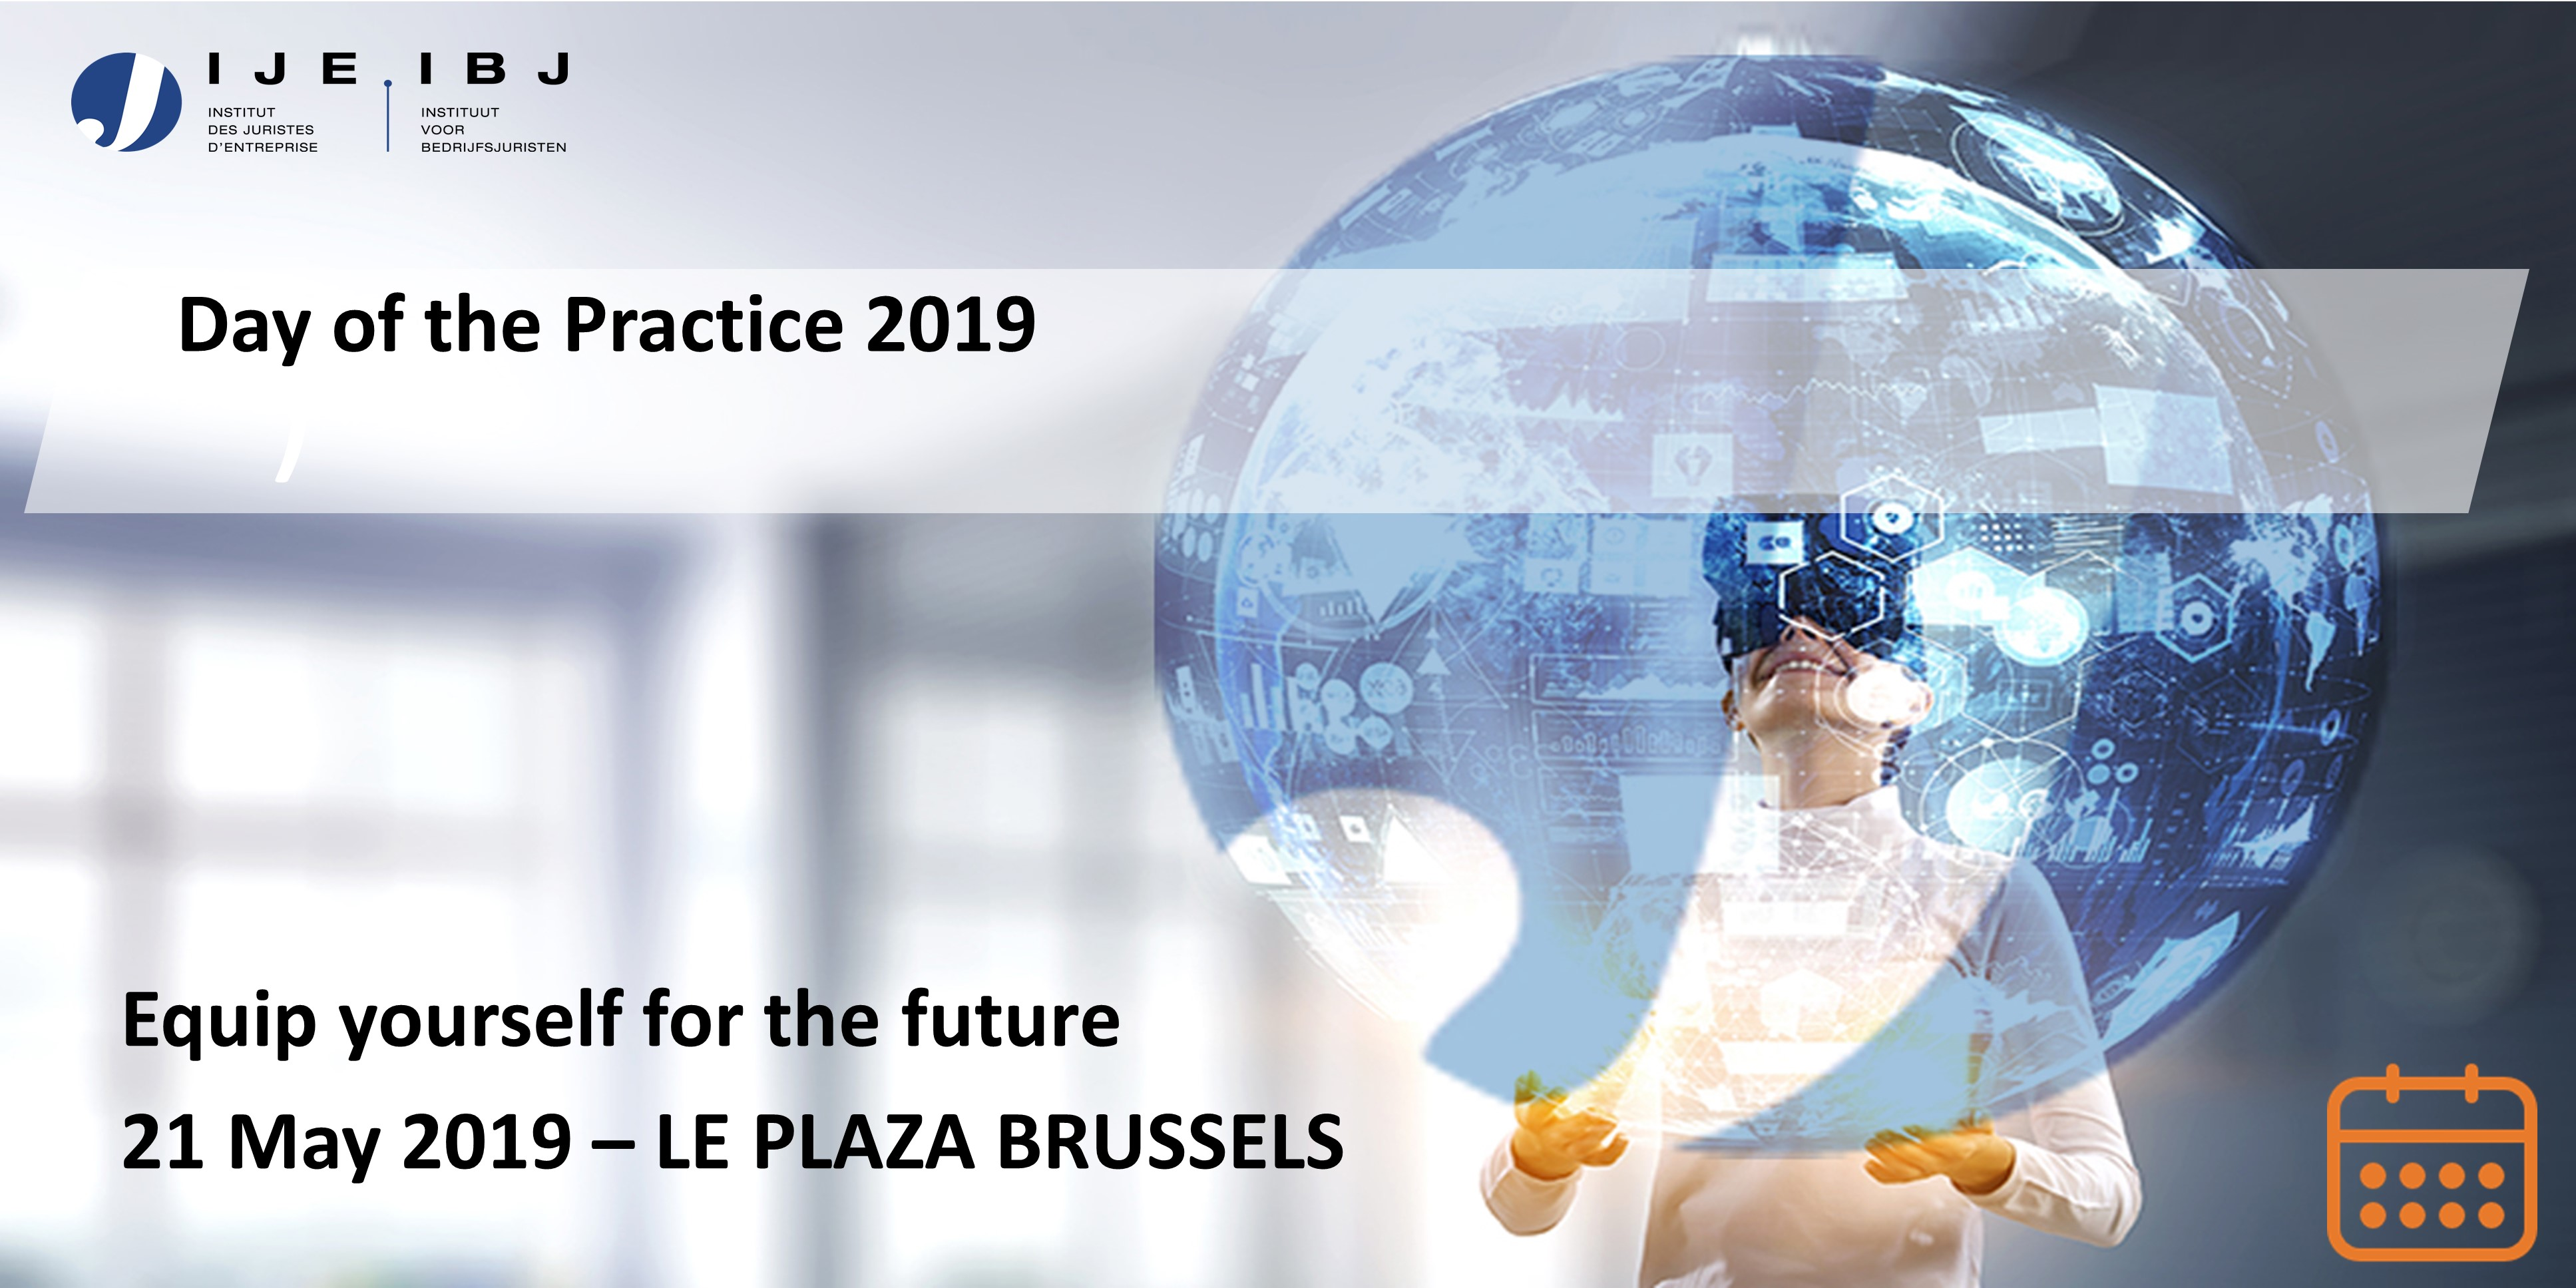 ibj-day-of-the-practice-2019